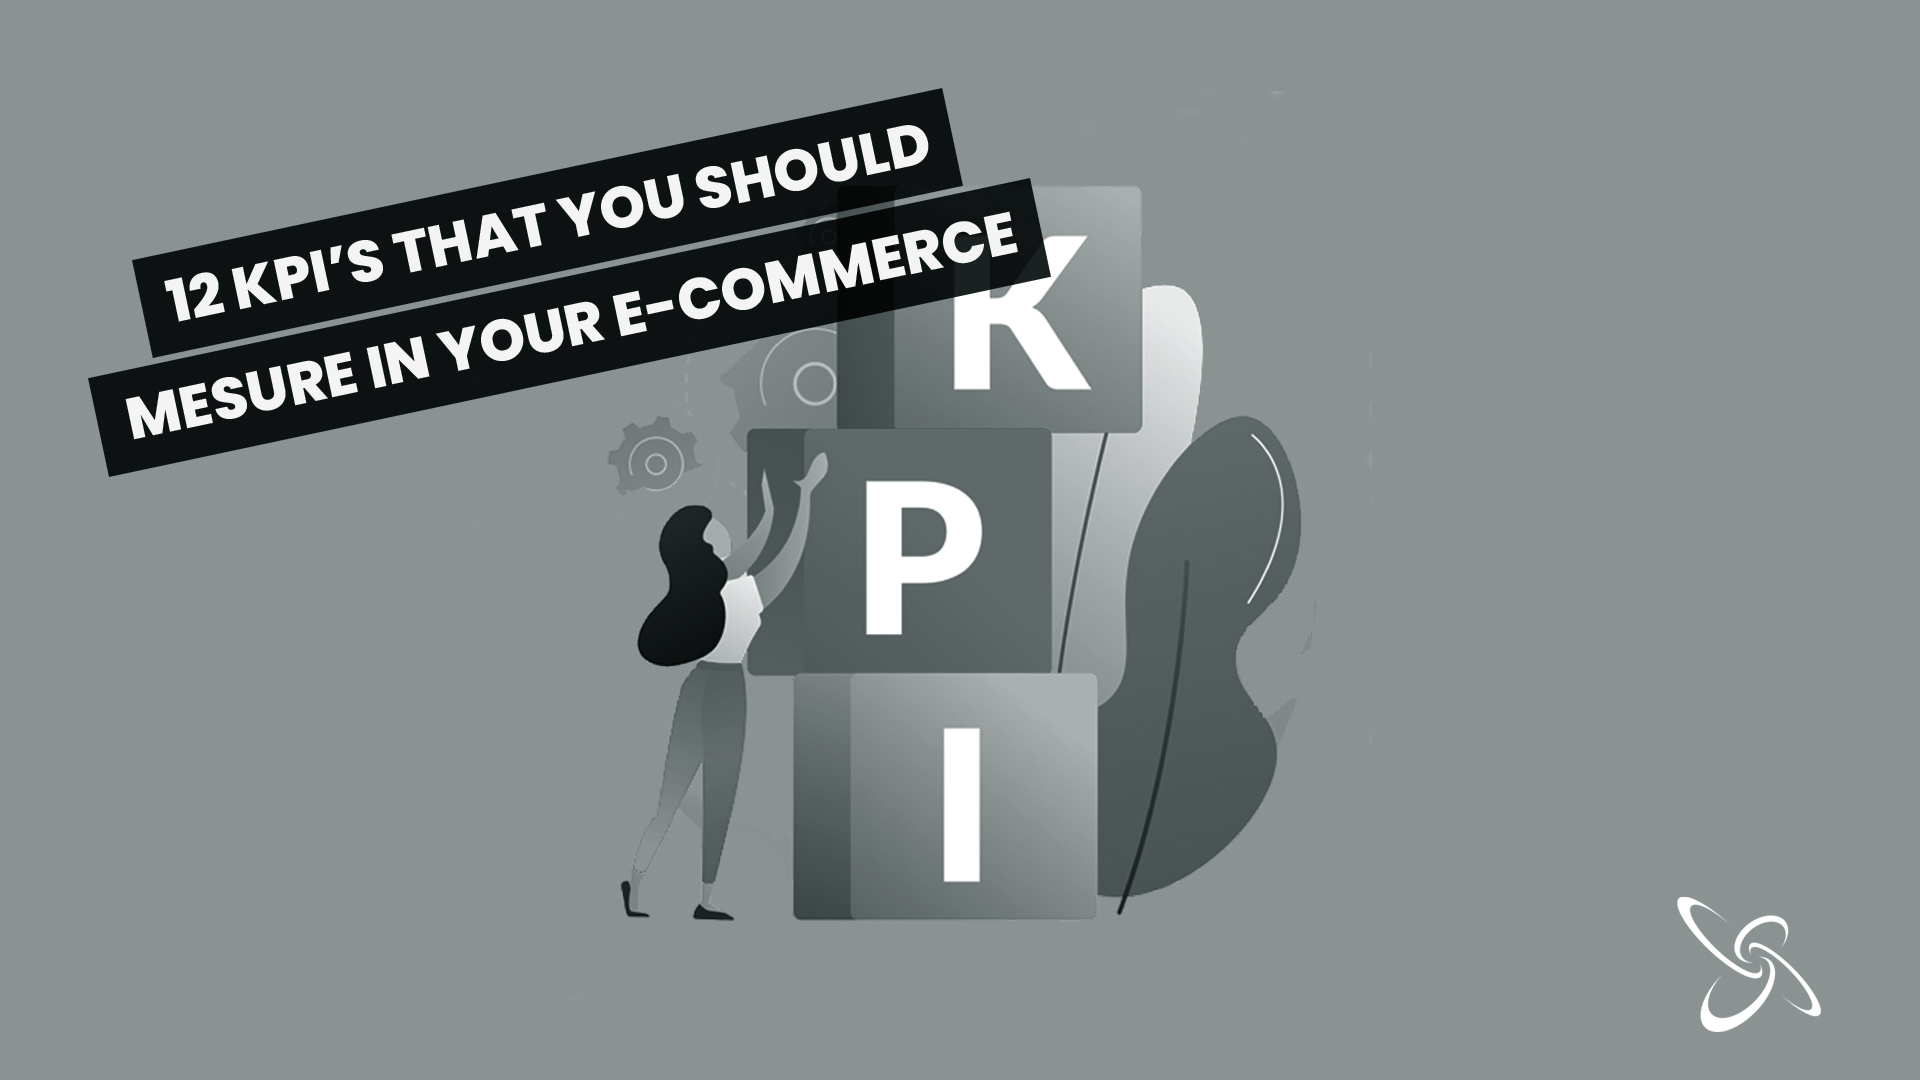 12 kpi's you should measure in your e-commerce